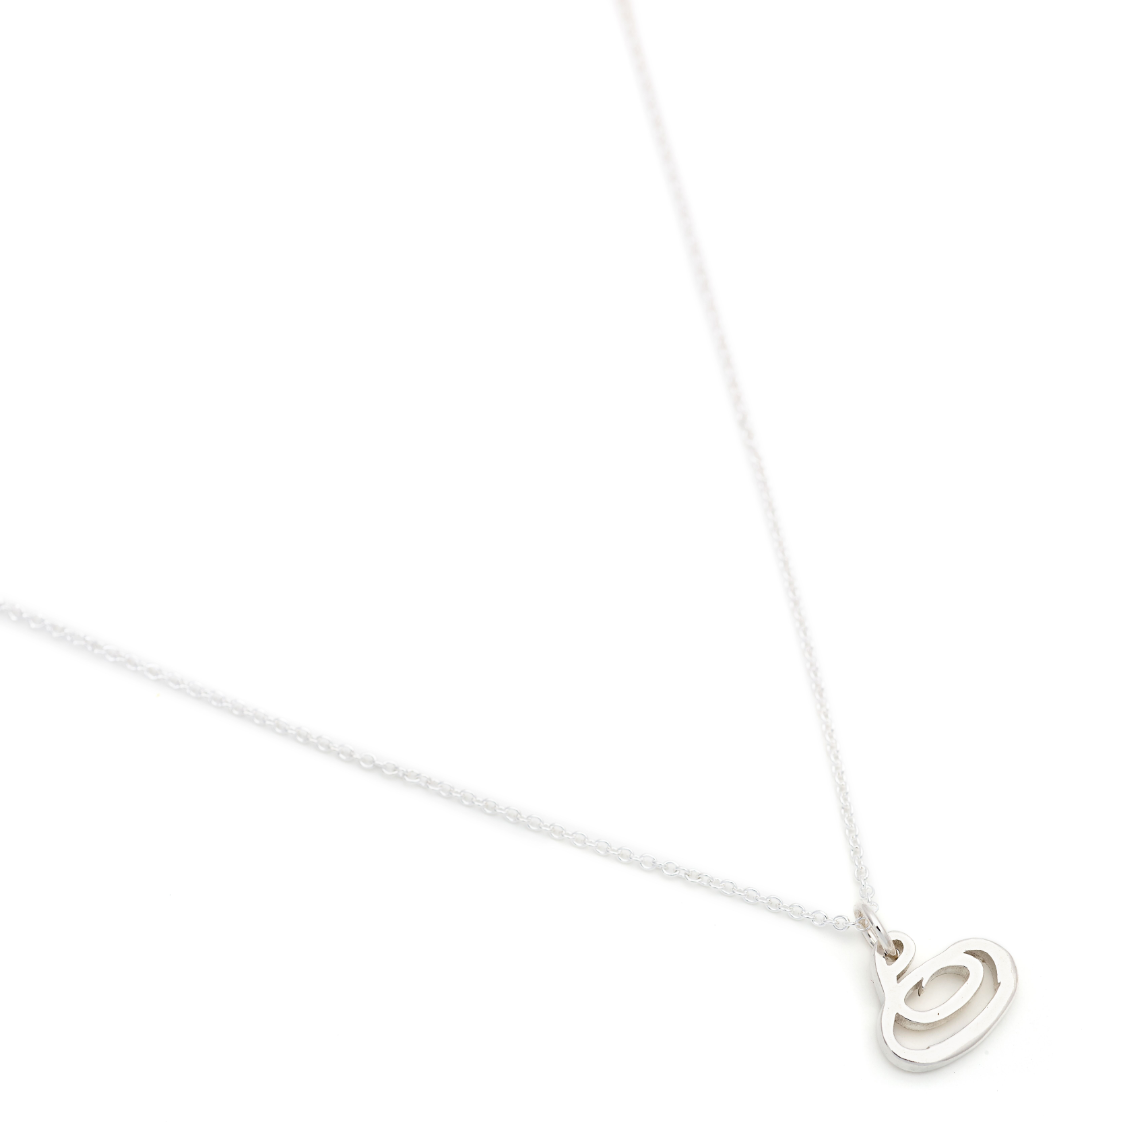 Curling Rock Necklace - Johanna Brierley Jewellery Design